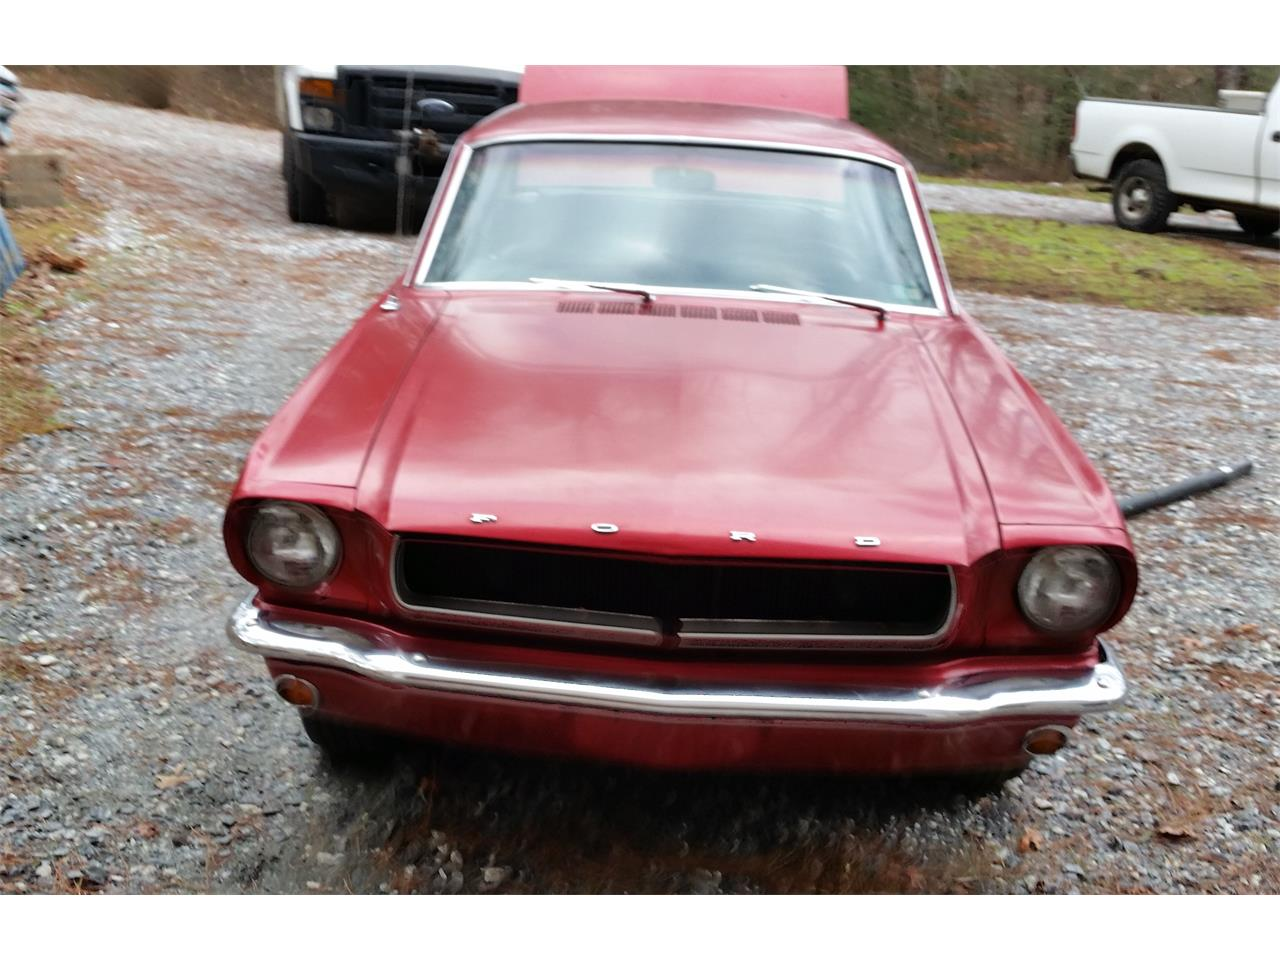 Large Picture of 1964 Mustang located in South Carolina - $9,500.00 Offered by a Private Seller - KNCG